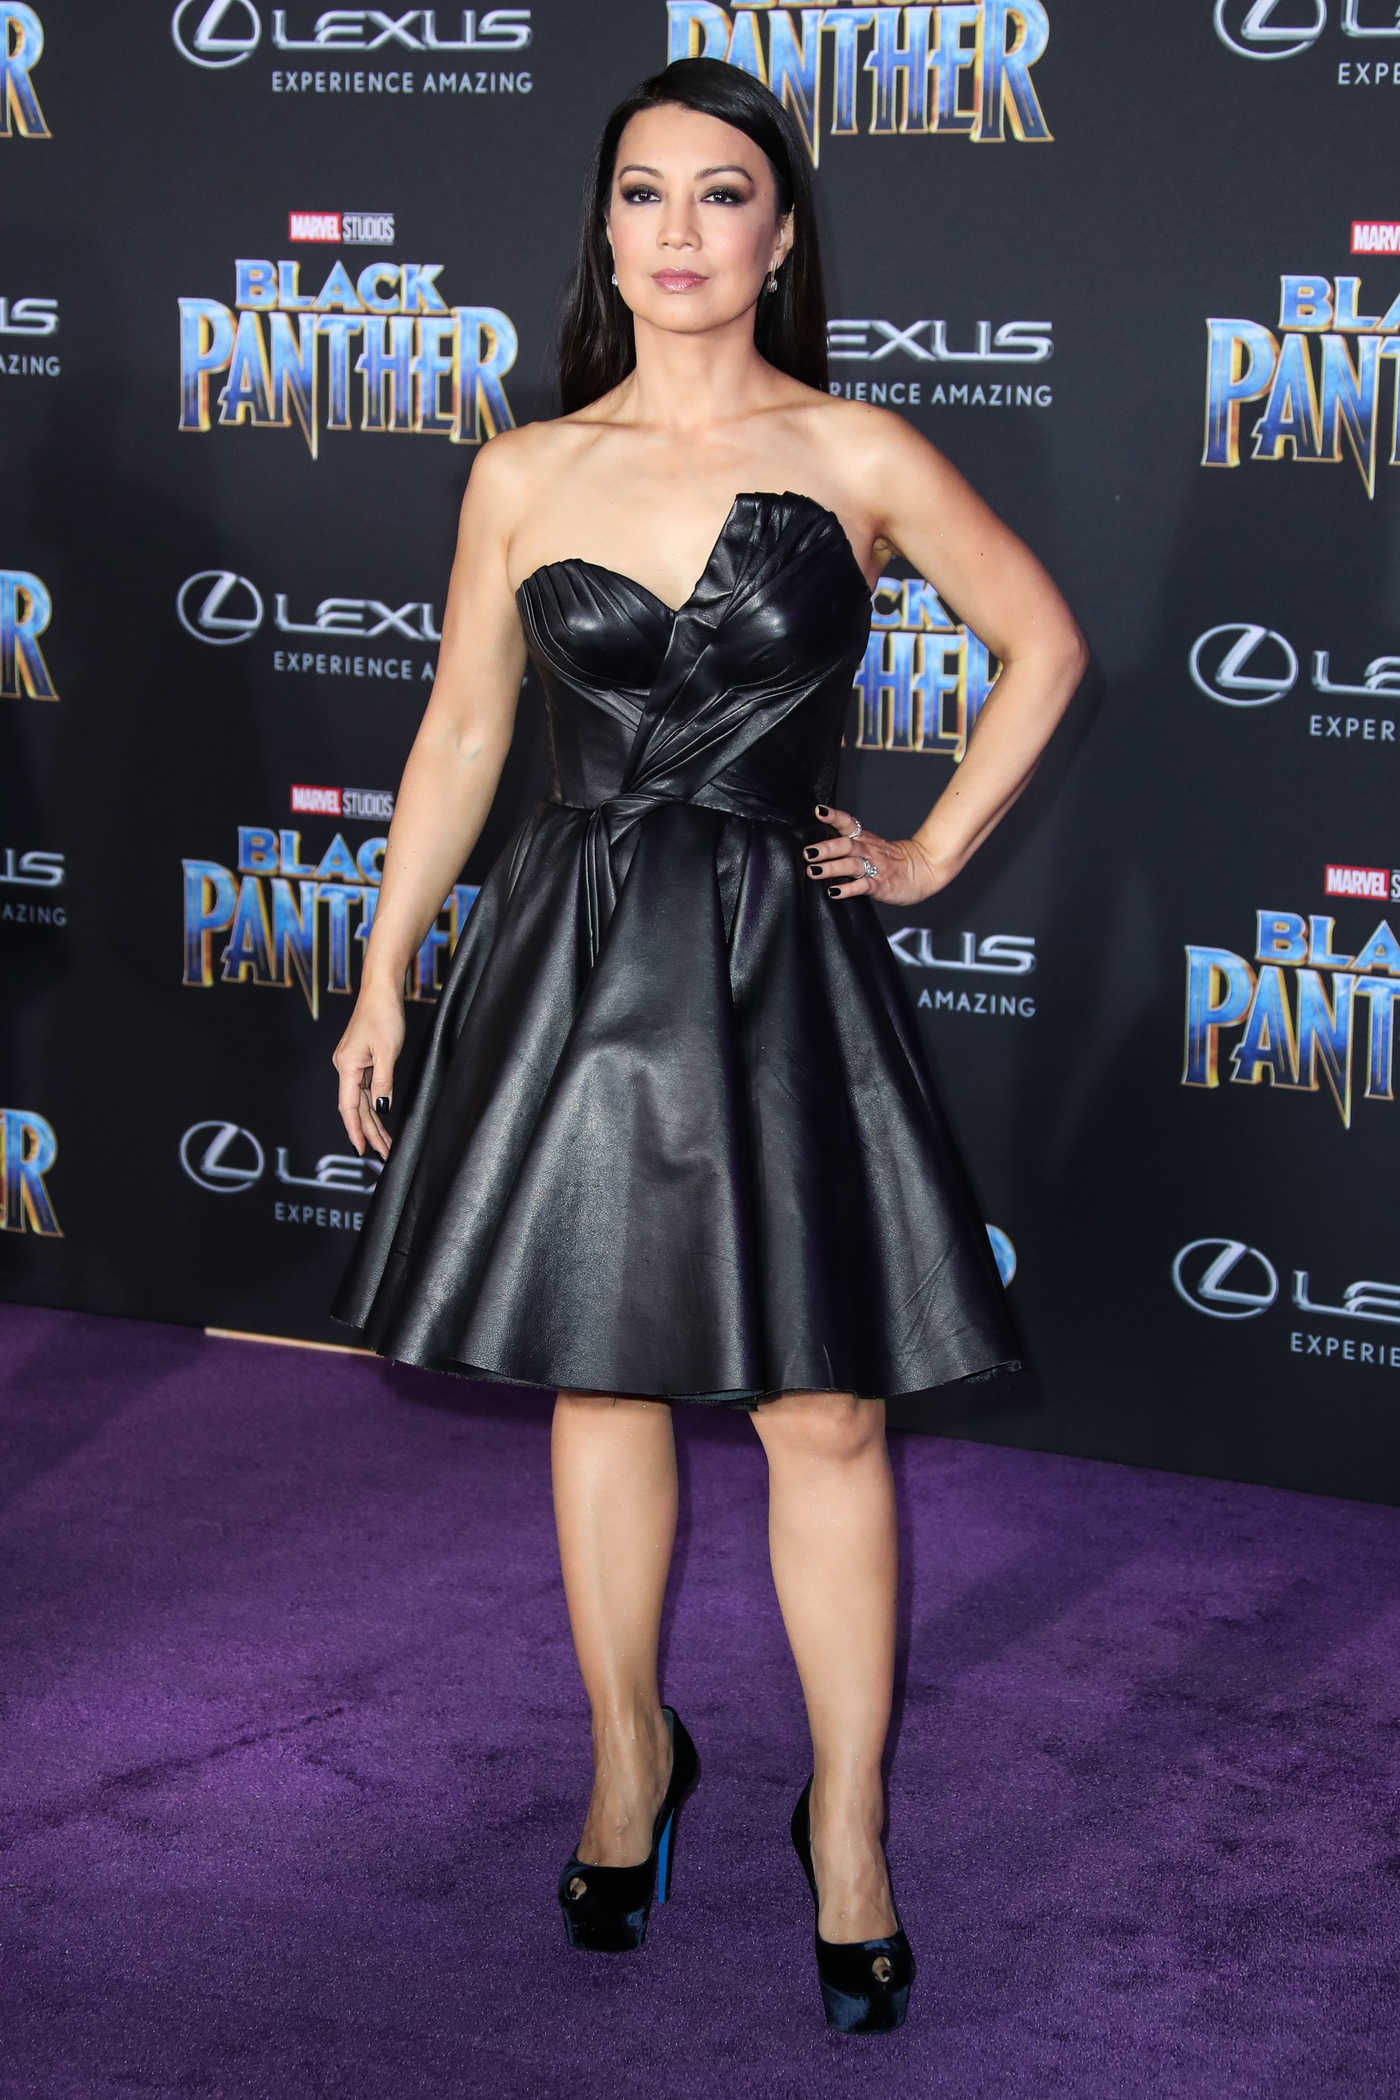 Ming-Na Wen at the Black Panther Premiere in Hollywood 01/29/2018